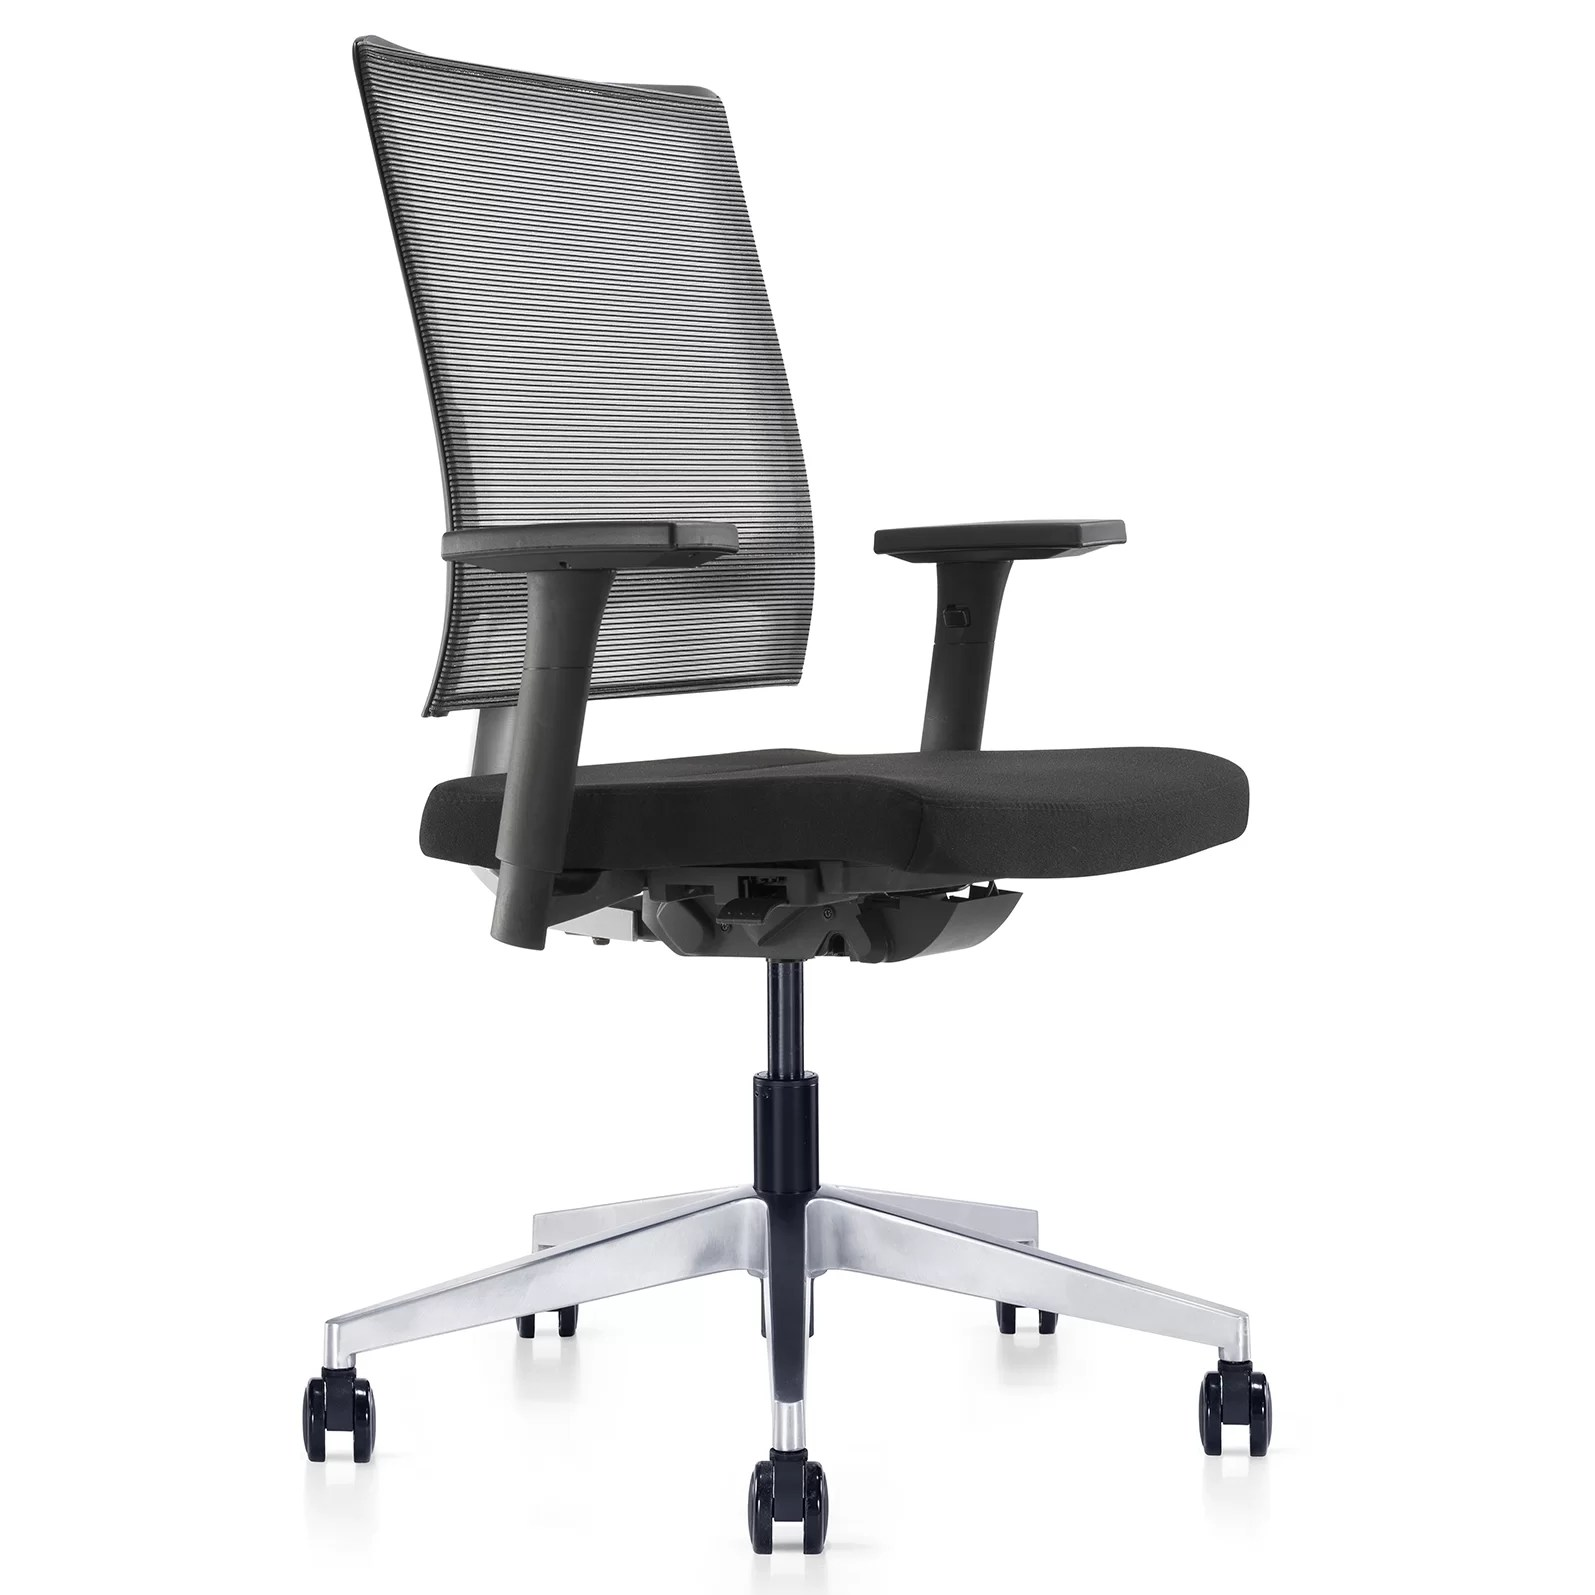 wayfair office chairs yoga sex chair meelano mesh desk and reviews